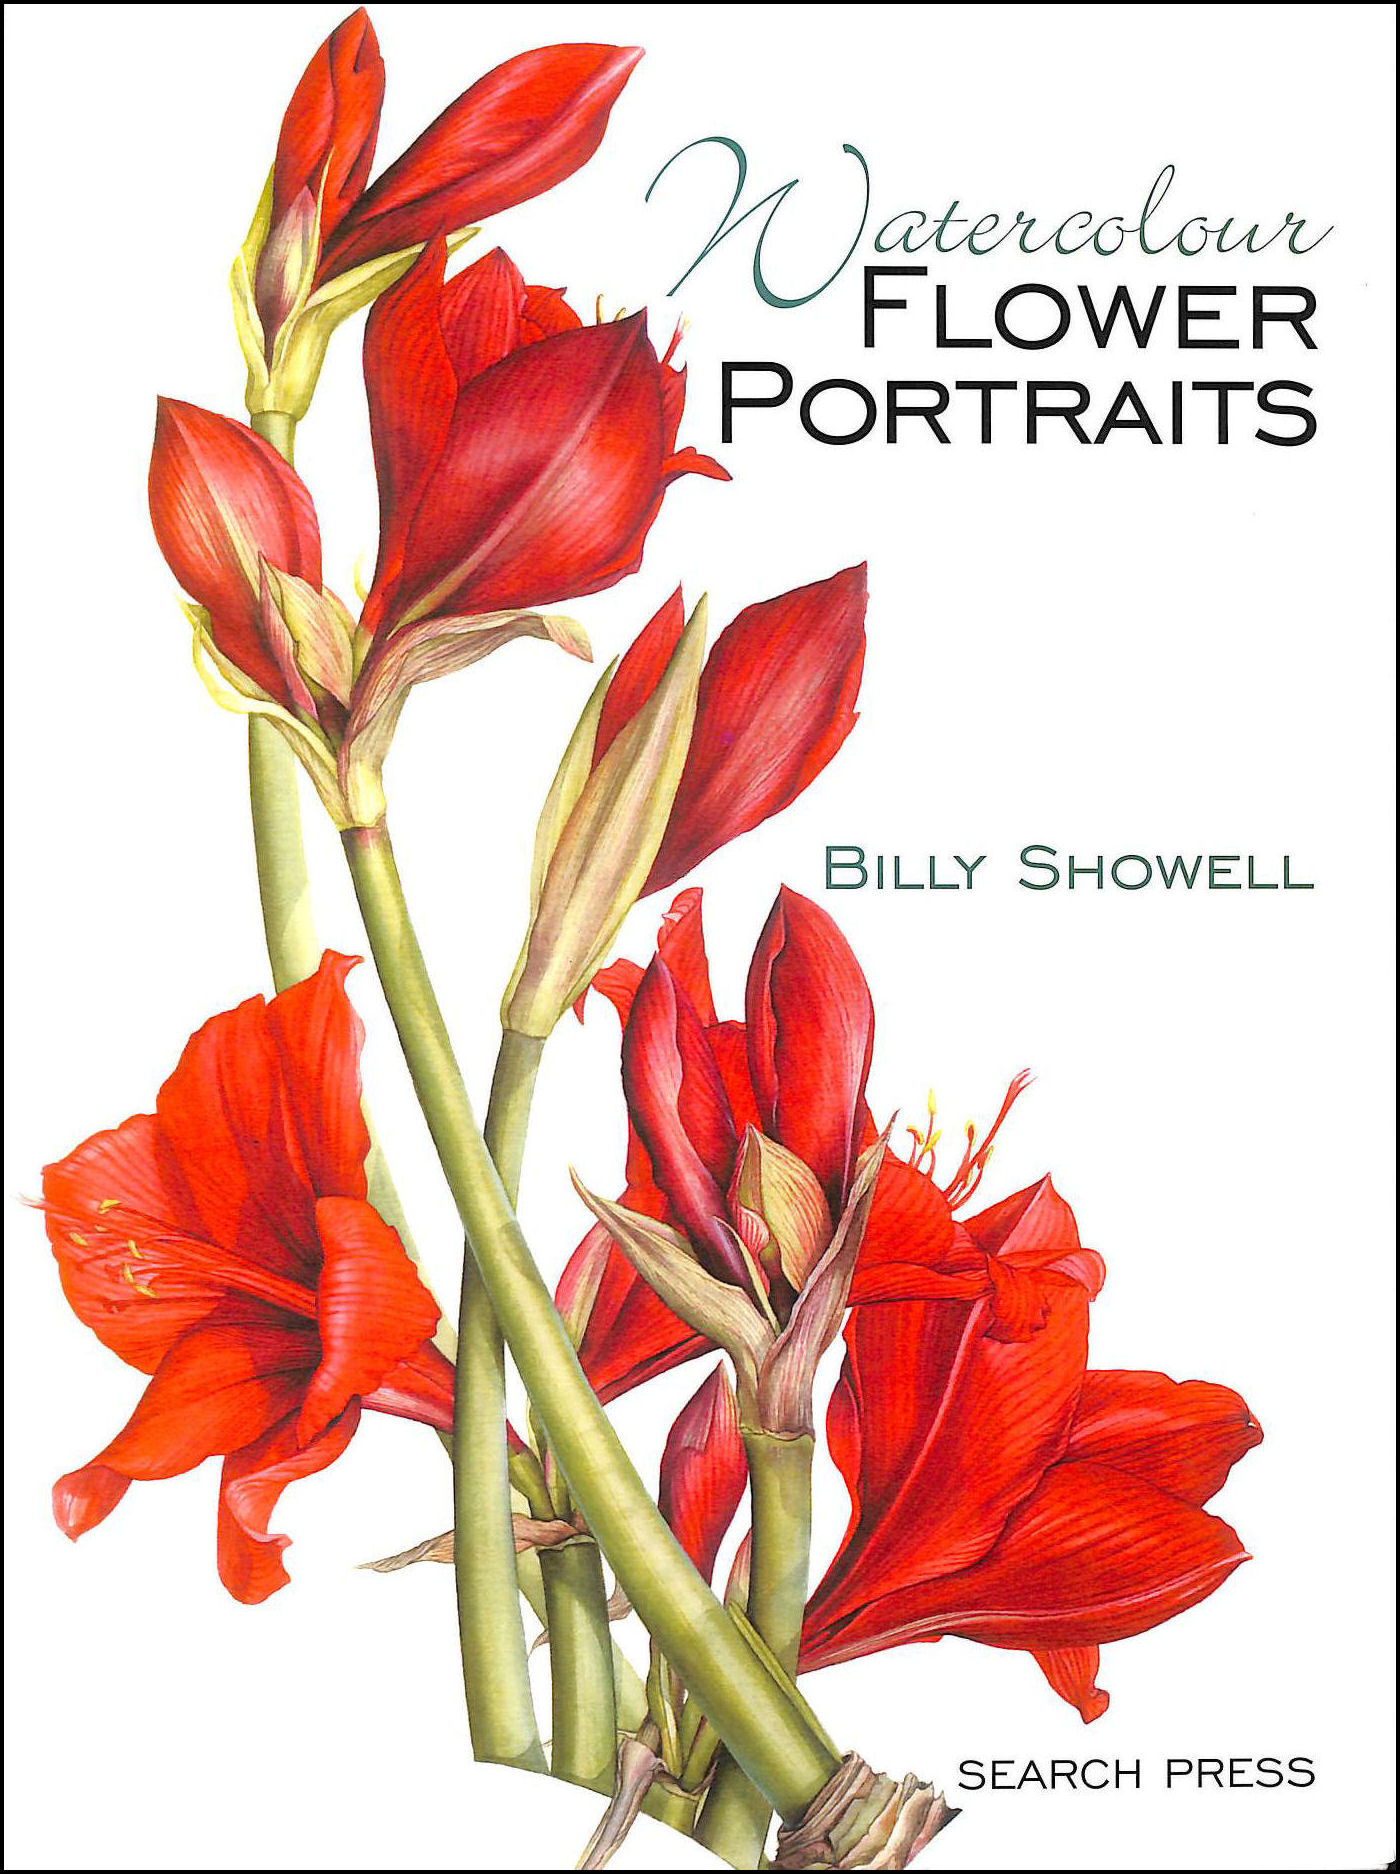 Watercolour Flower Portraits, Billy Showell